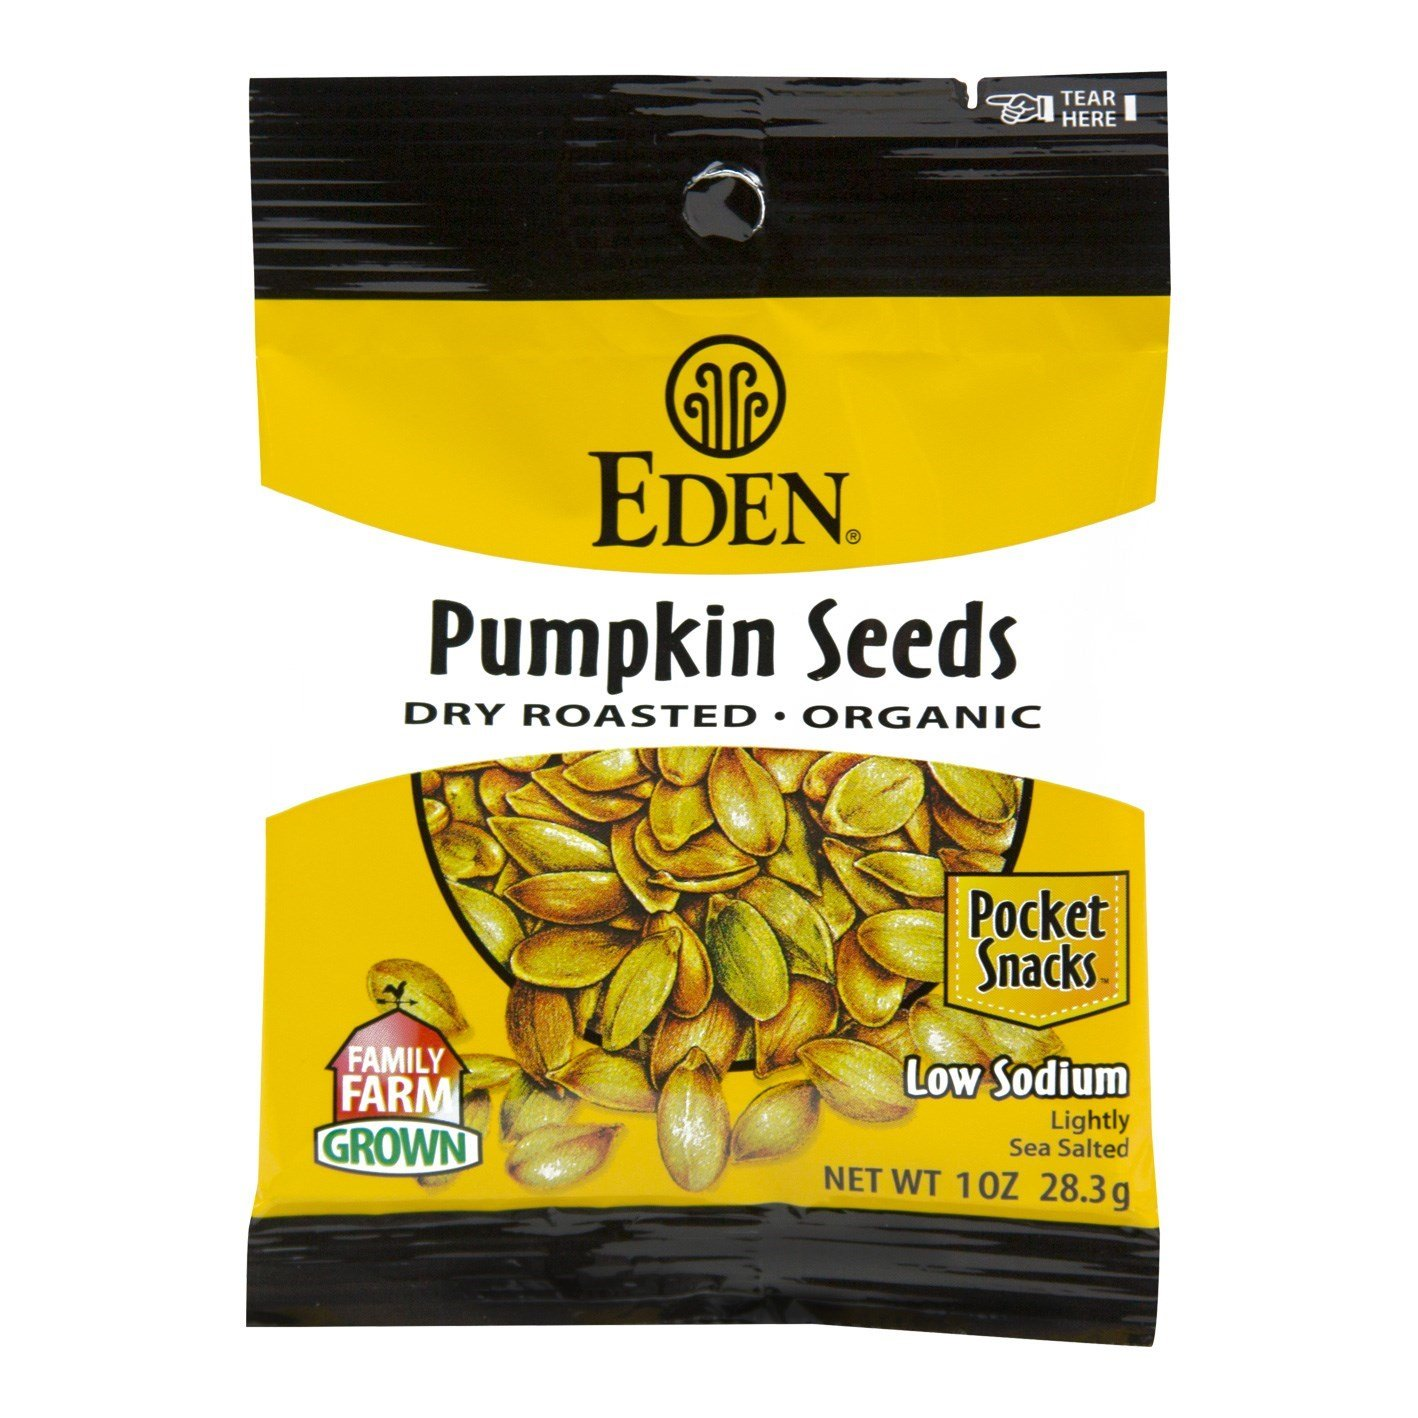 Eden Organic Pumpkin Seeds, Dry Roasted and Salted, Pocket Snacks, 1 Ounce (Pack of 12) by Eden